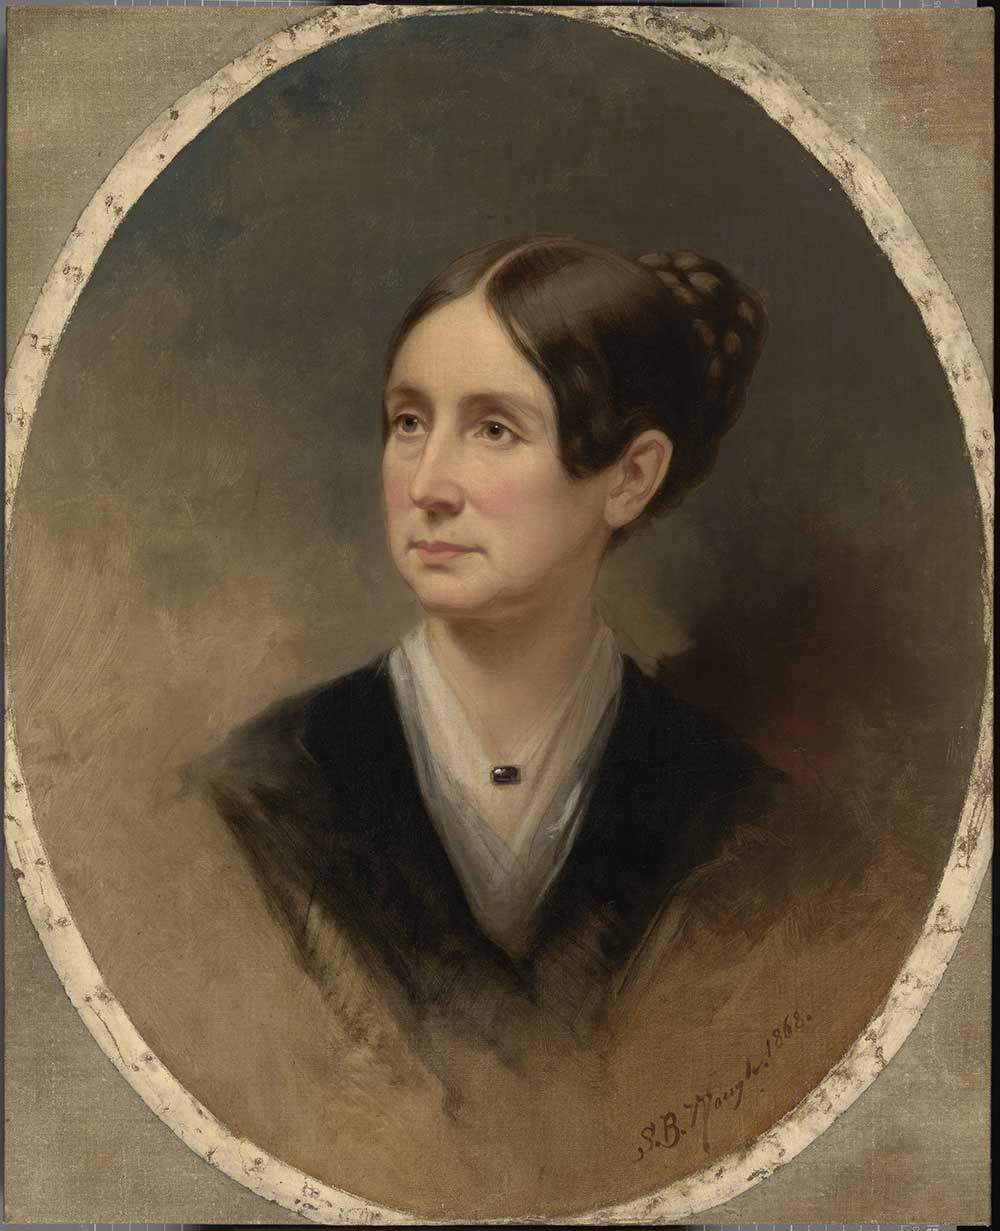 Painted portrait of Dorothea Dix in circular frame